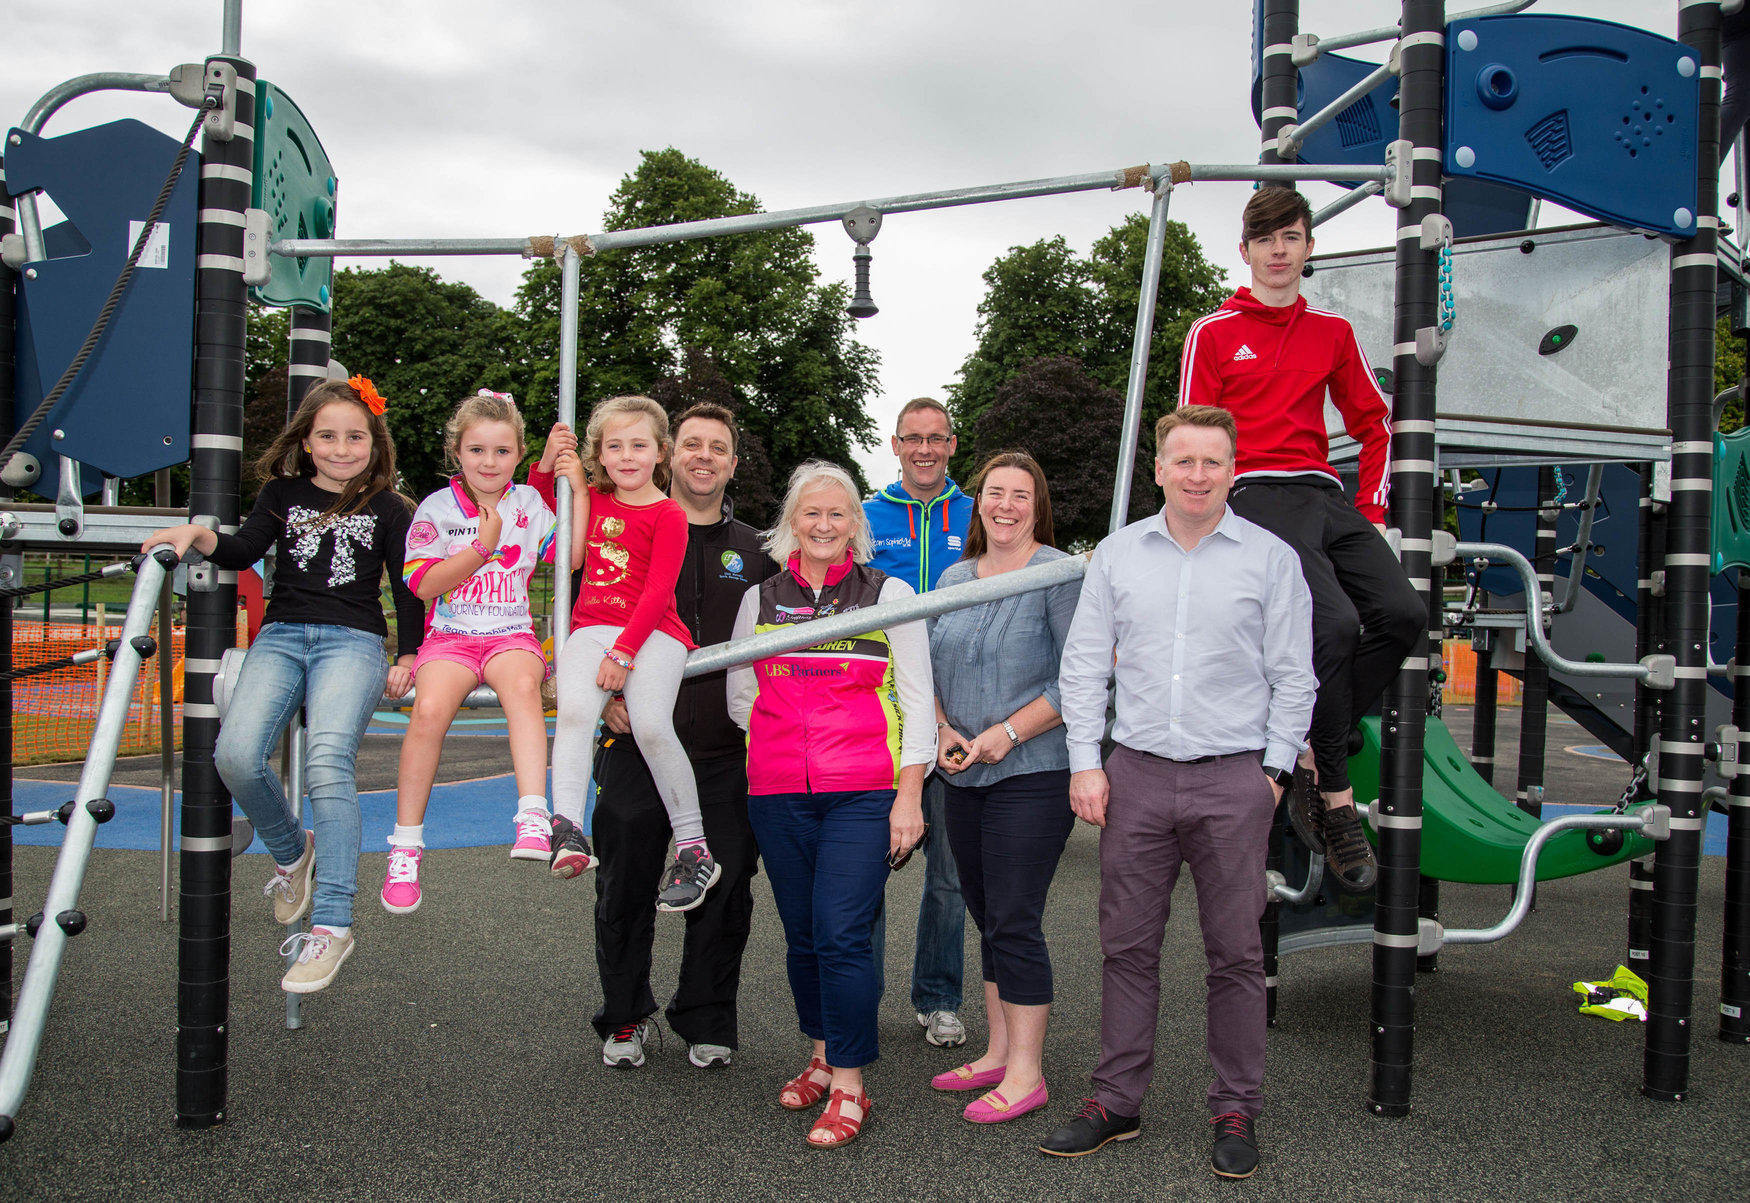 Pictured at the new Mungret Inclusion Park and Playground were, Kayla Mulcahy, Lexie O'Donoghue, Aoife Carroll, Liam Mulcahy, Sophies Journey, Valerie Dunne, C4SC, Gerard Lynch, Team Sophie, Christine O'Donoghue, Keith Walker, Kompan and Dion O'Dowd. Picture by Alan Place.